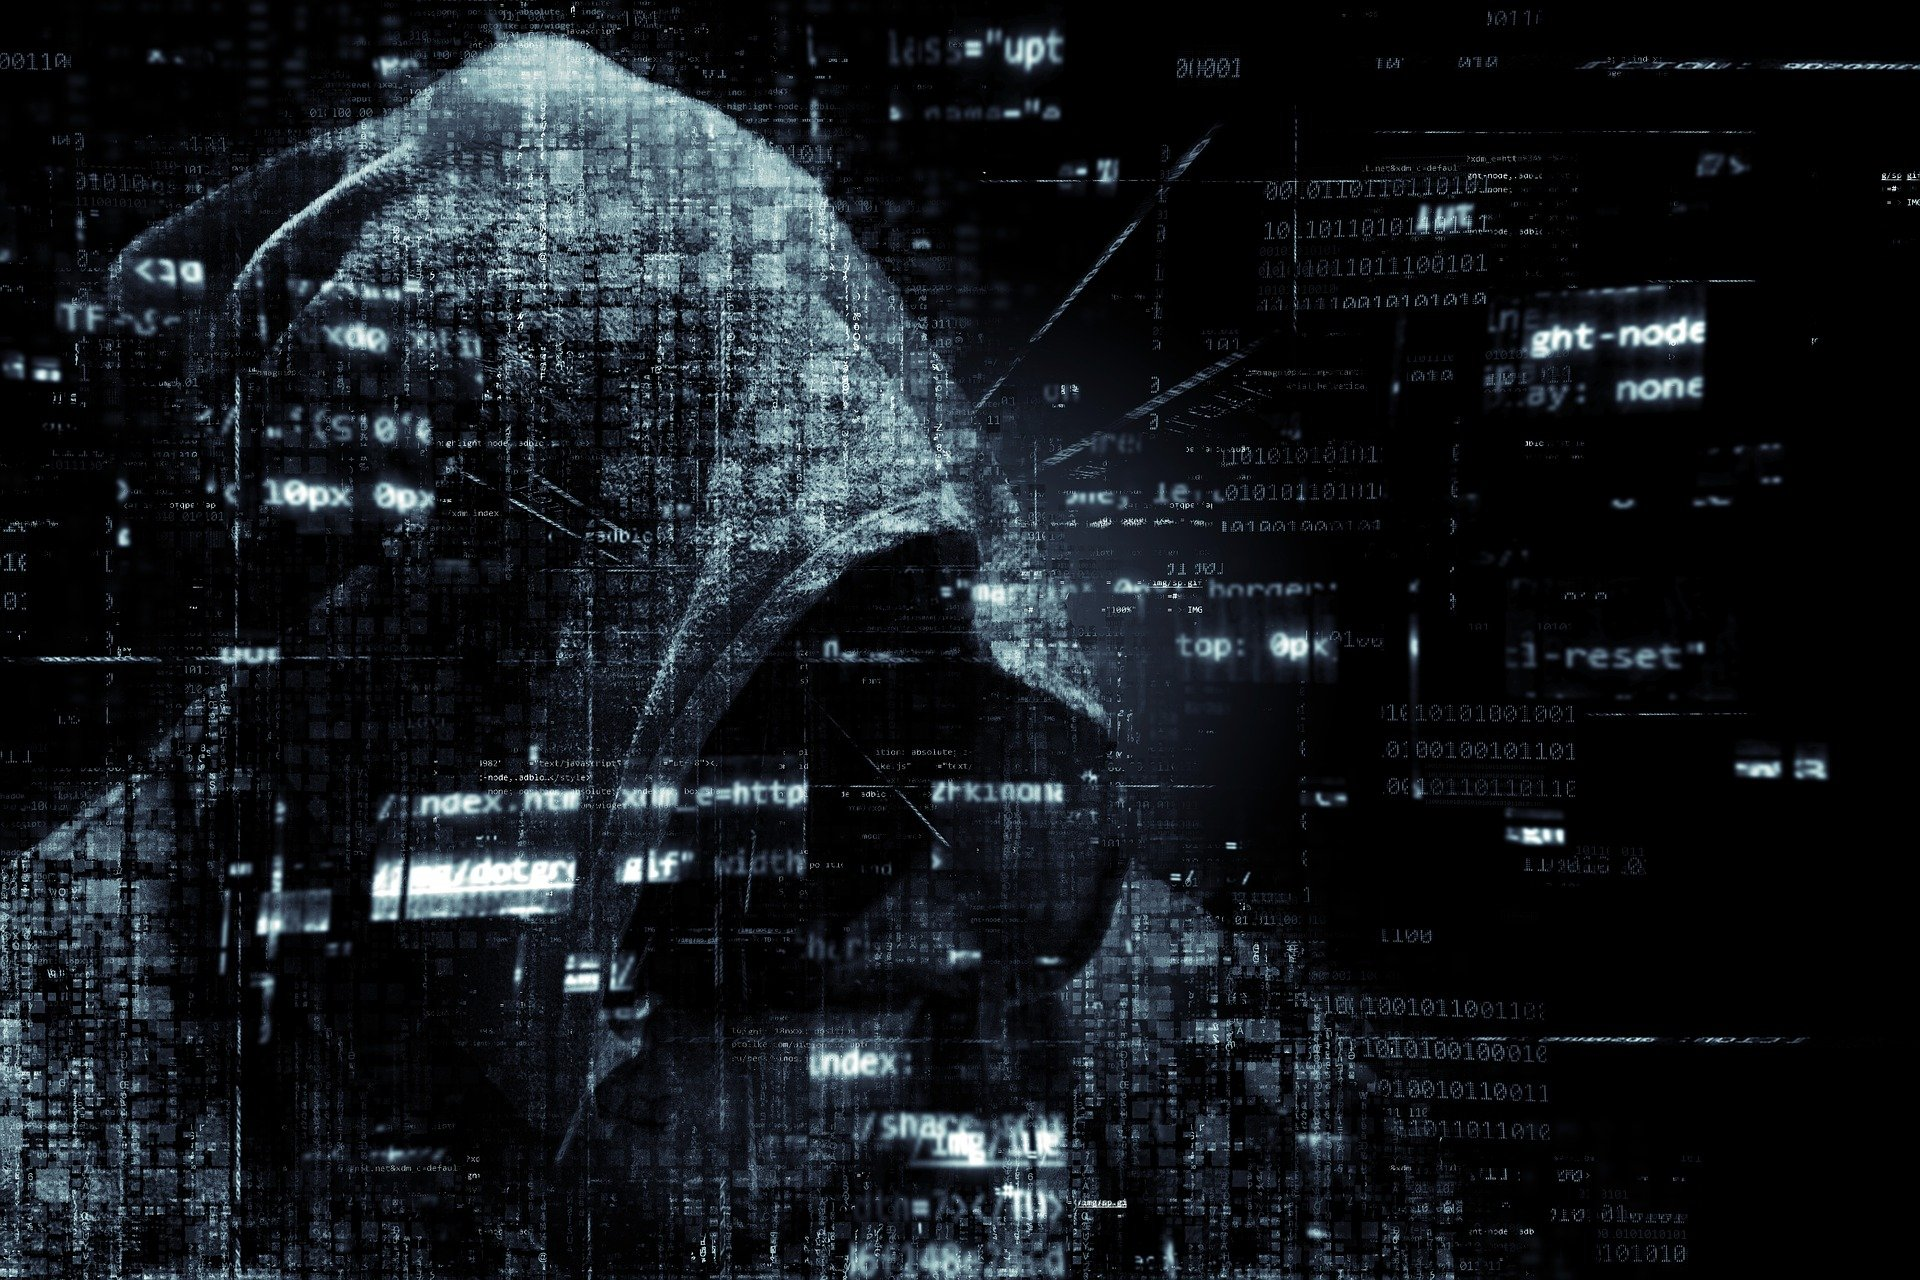 Complexity of cybercrime rises: Keeping yourself safe online